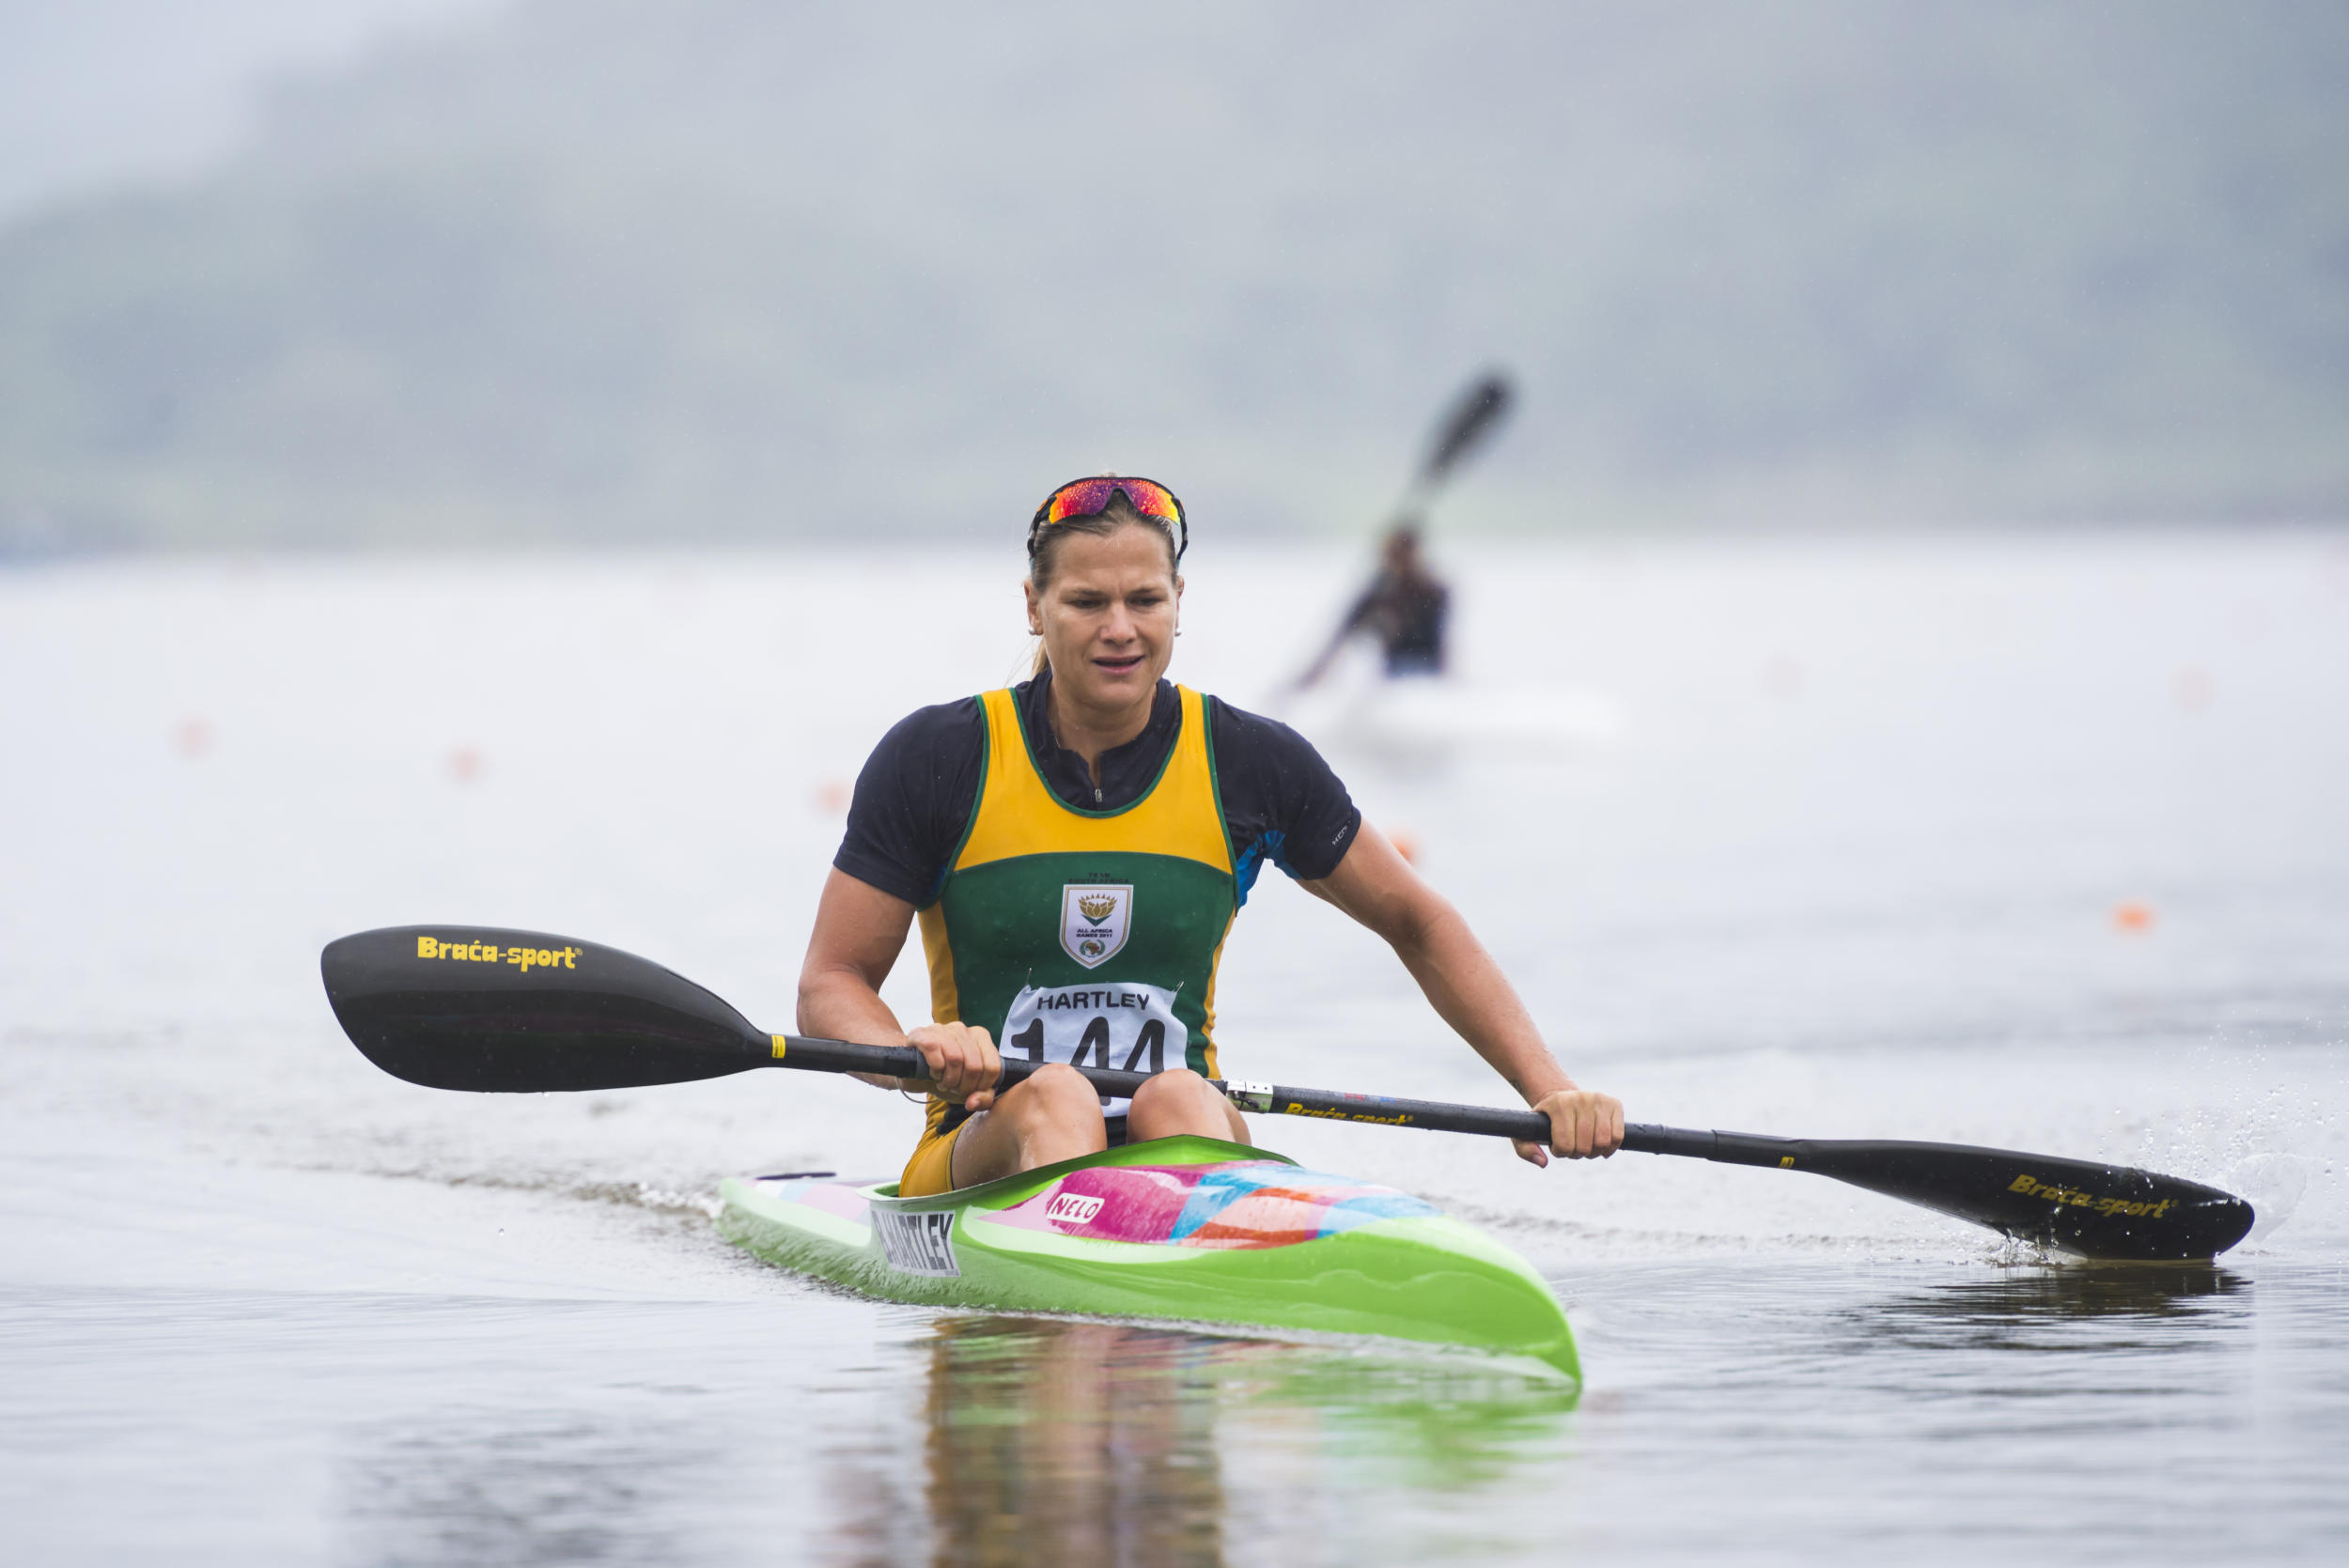 Hartley relishing the chance of a repeat performance in Rio... or better